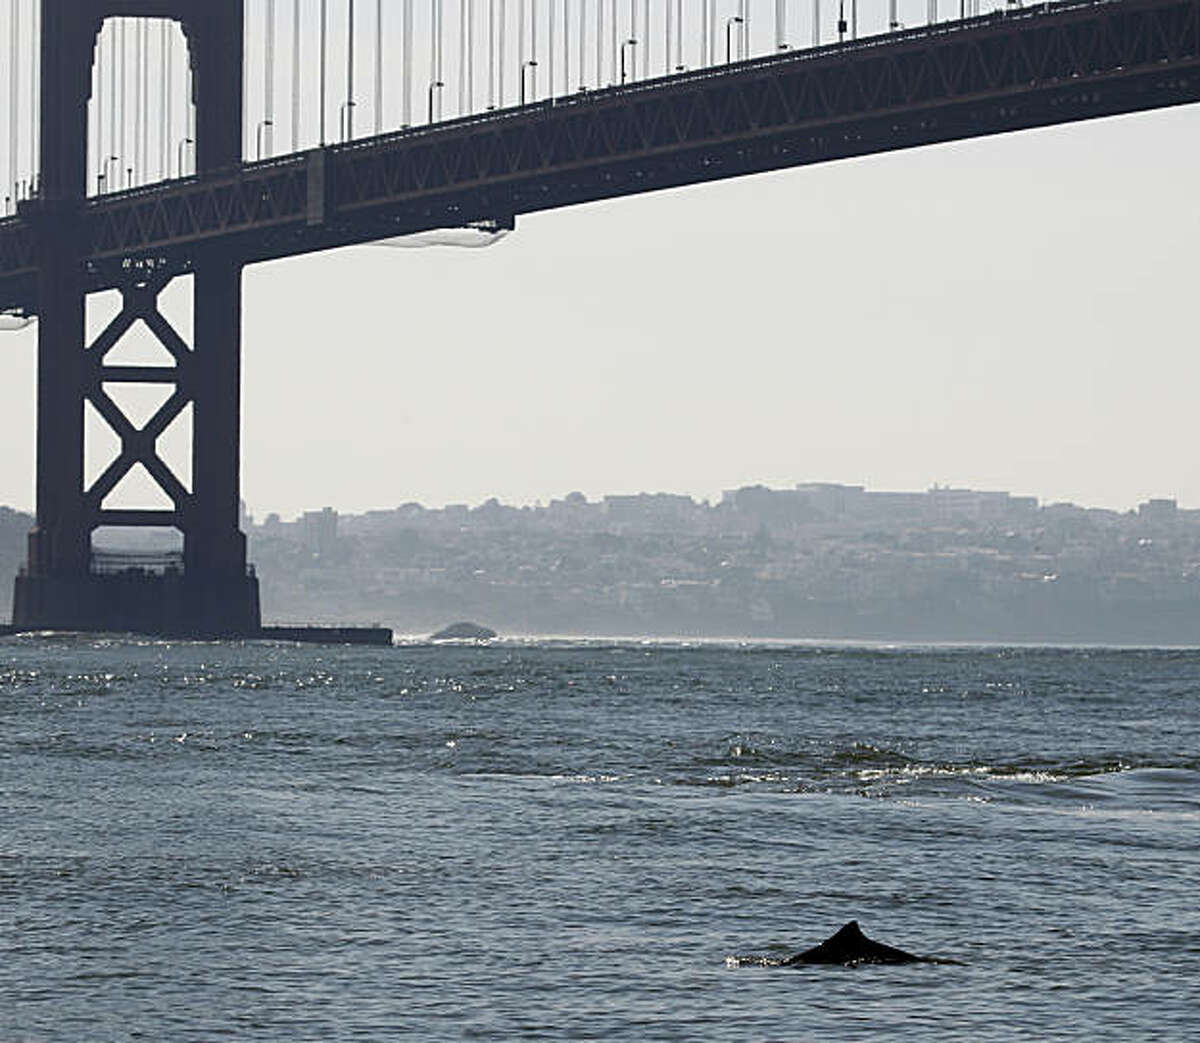 A harbor porpoise surfaces near the Golden Gate Bridge in Sausalito, Calif., on Wednesday, Nov. 3, 2010. Marine biologists are taking a close look at the cetaceans, which haven't been seen inside the bay in many years.